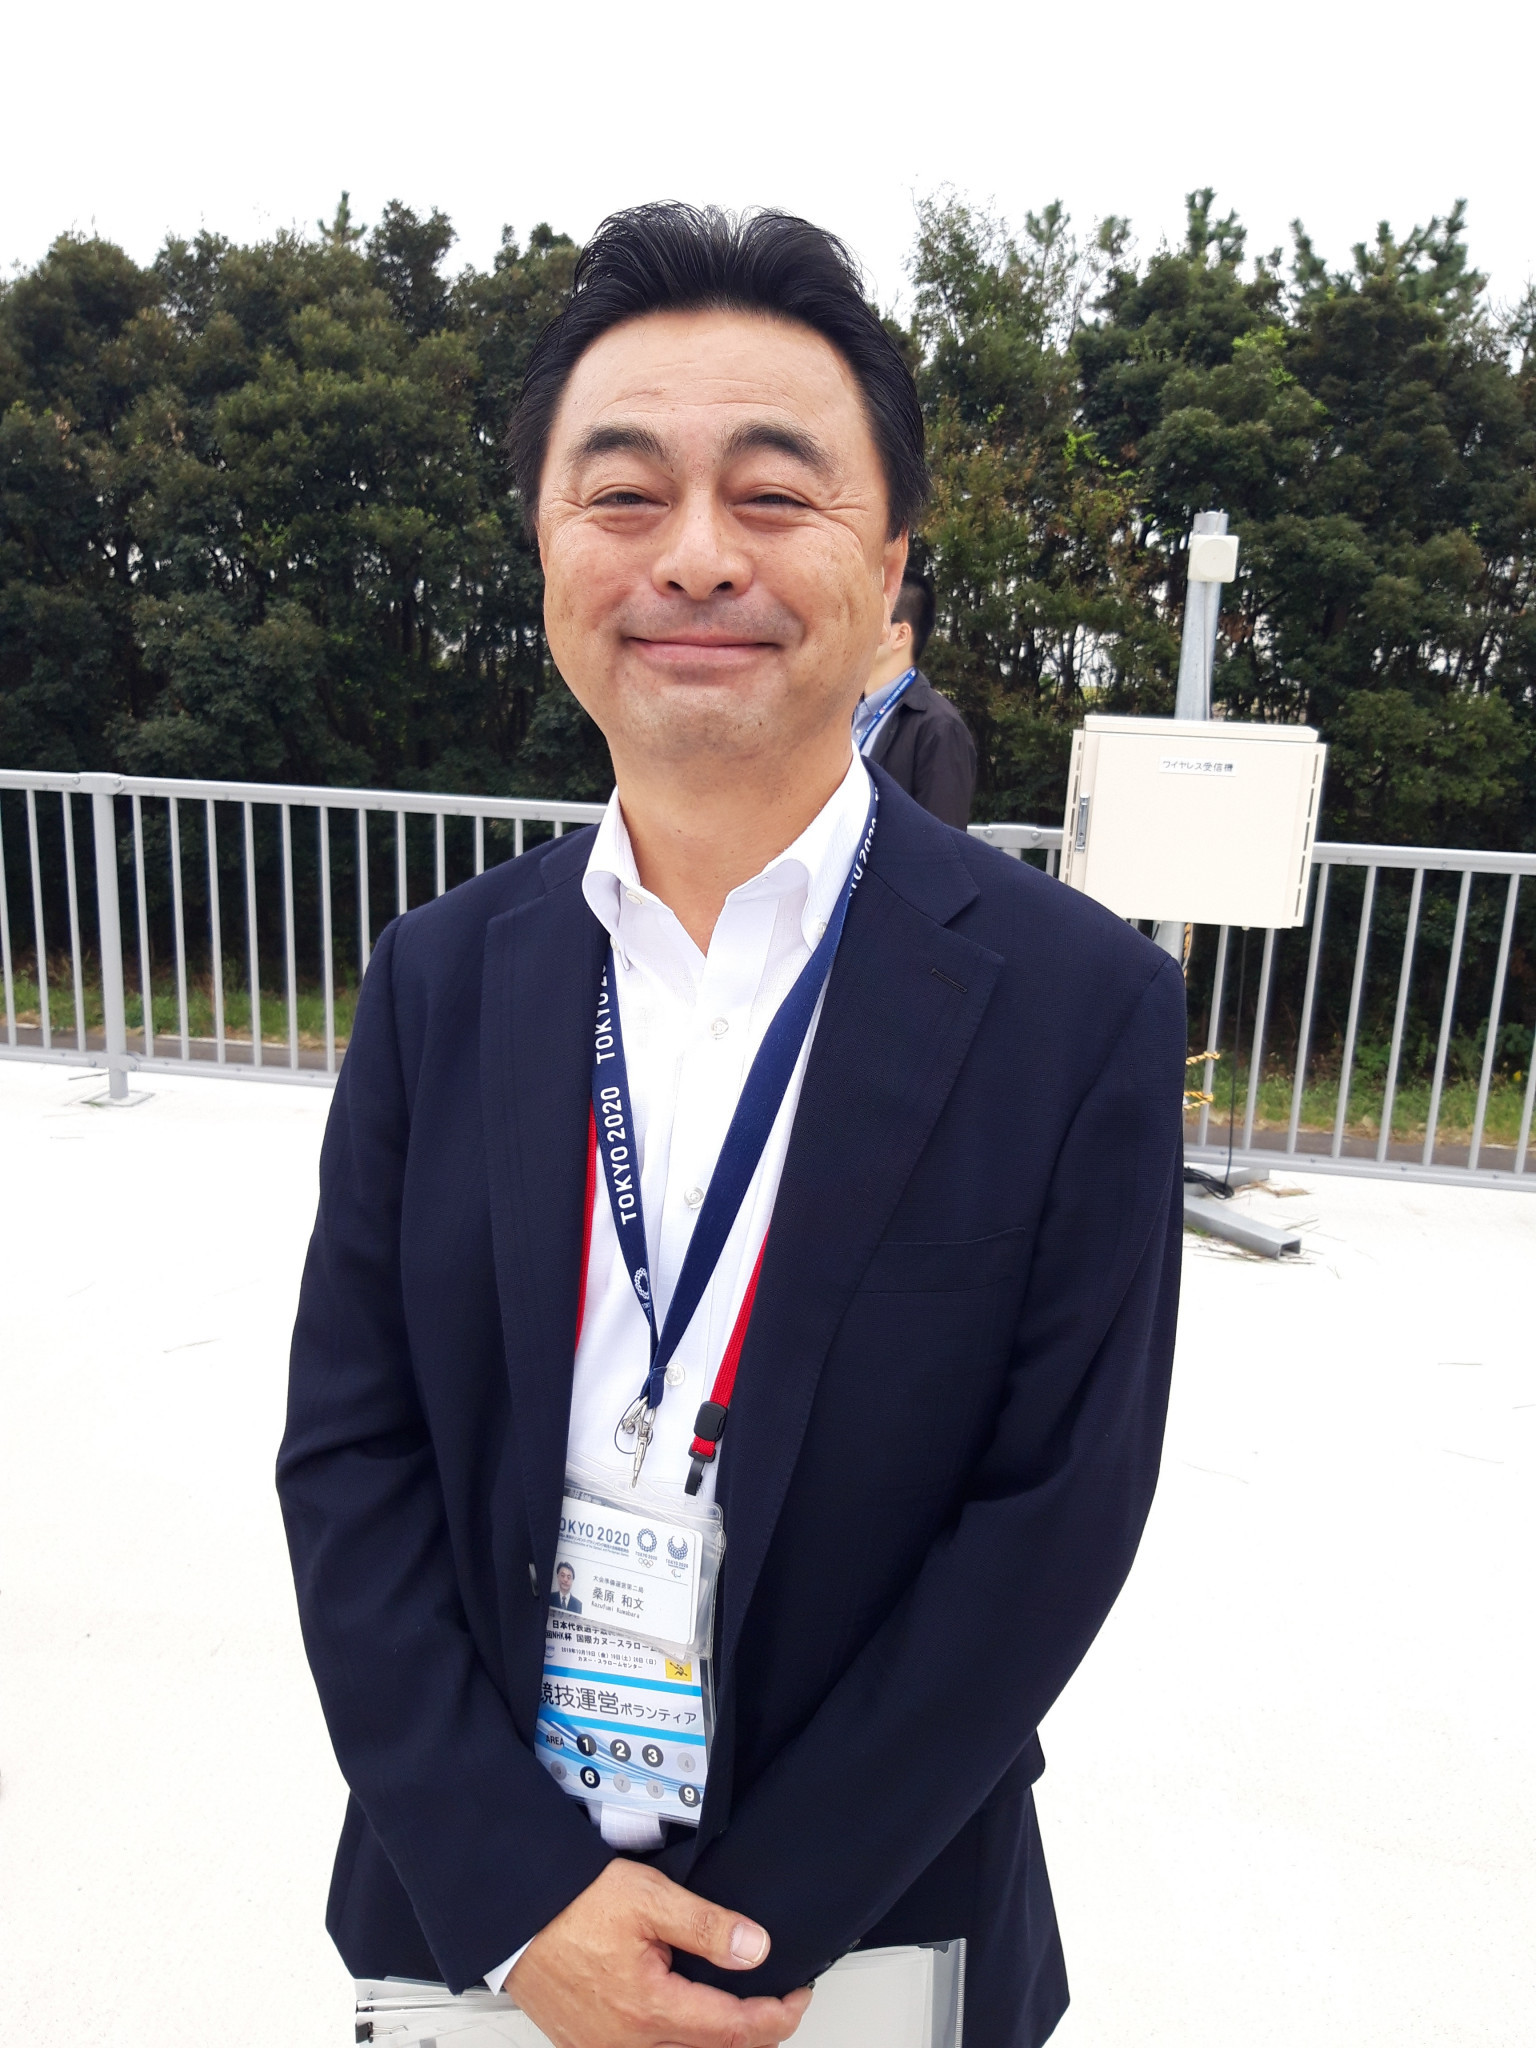 Kasai Canoe Slalom Centre manager Kazufumi Kuwabara said the Olympic venue could transform the sport in Japan ©ITG